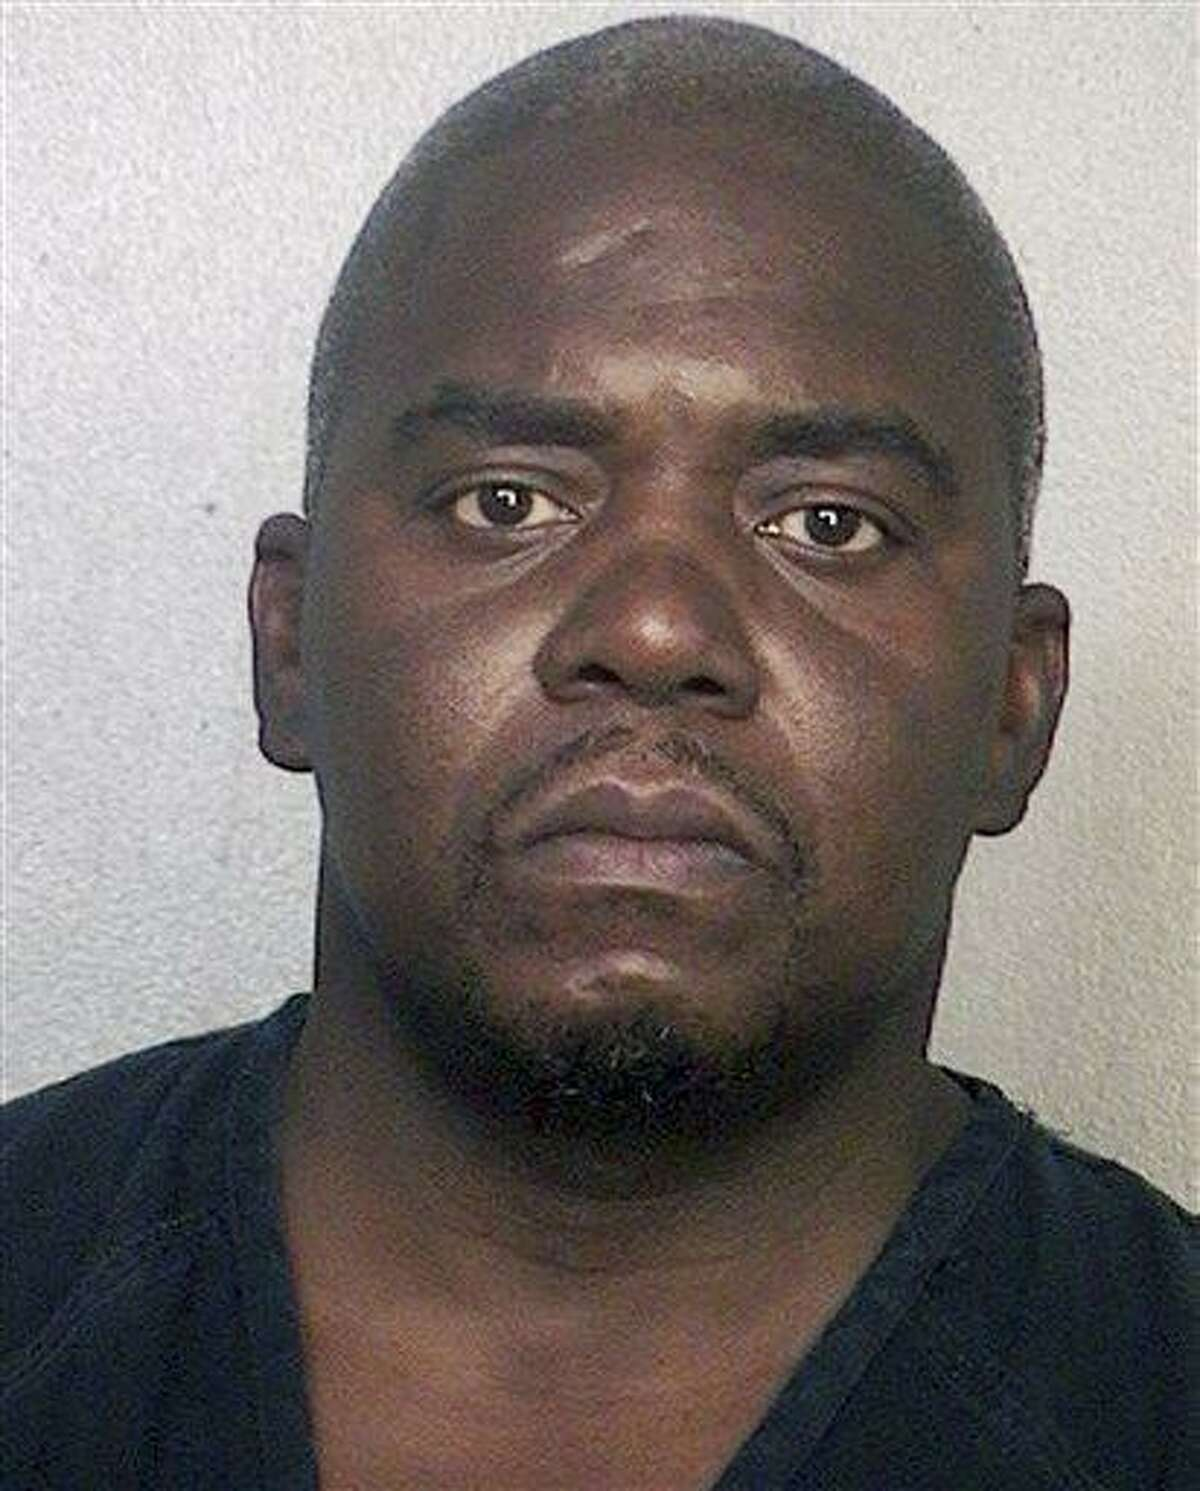 This booking photo released via the website of the Broward County Sheriff's Office shows Ernest Wallace, arrested June 28, 2013 when he surrendered at a police station in Miramar, Fla. Authorities had been seeking Wallace on a charge of acting as an accessory after the murder of Odin Lloyd on June 17 in North Attleborough, Mass. Former New England Patriots tight end Aaron Hernandez has been charged with Lloyd's murder. (AP Photo/Broward County Sheriff's Office)